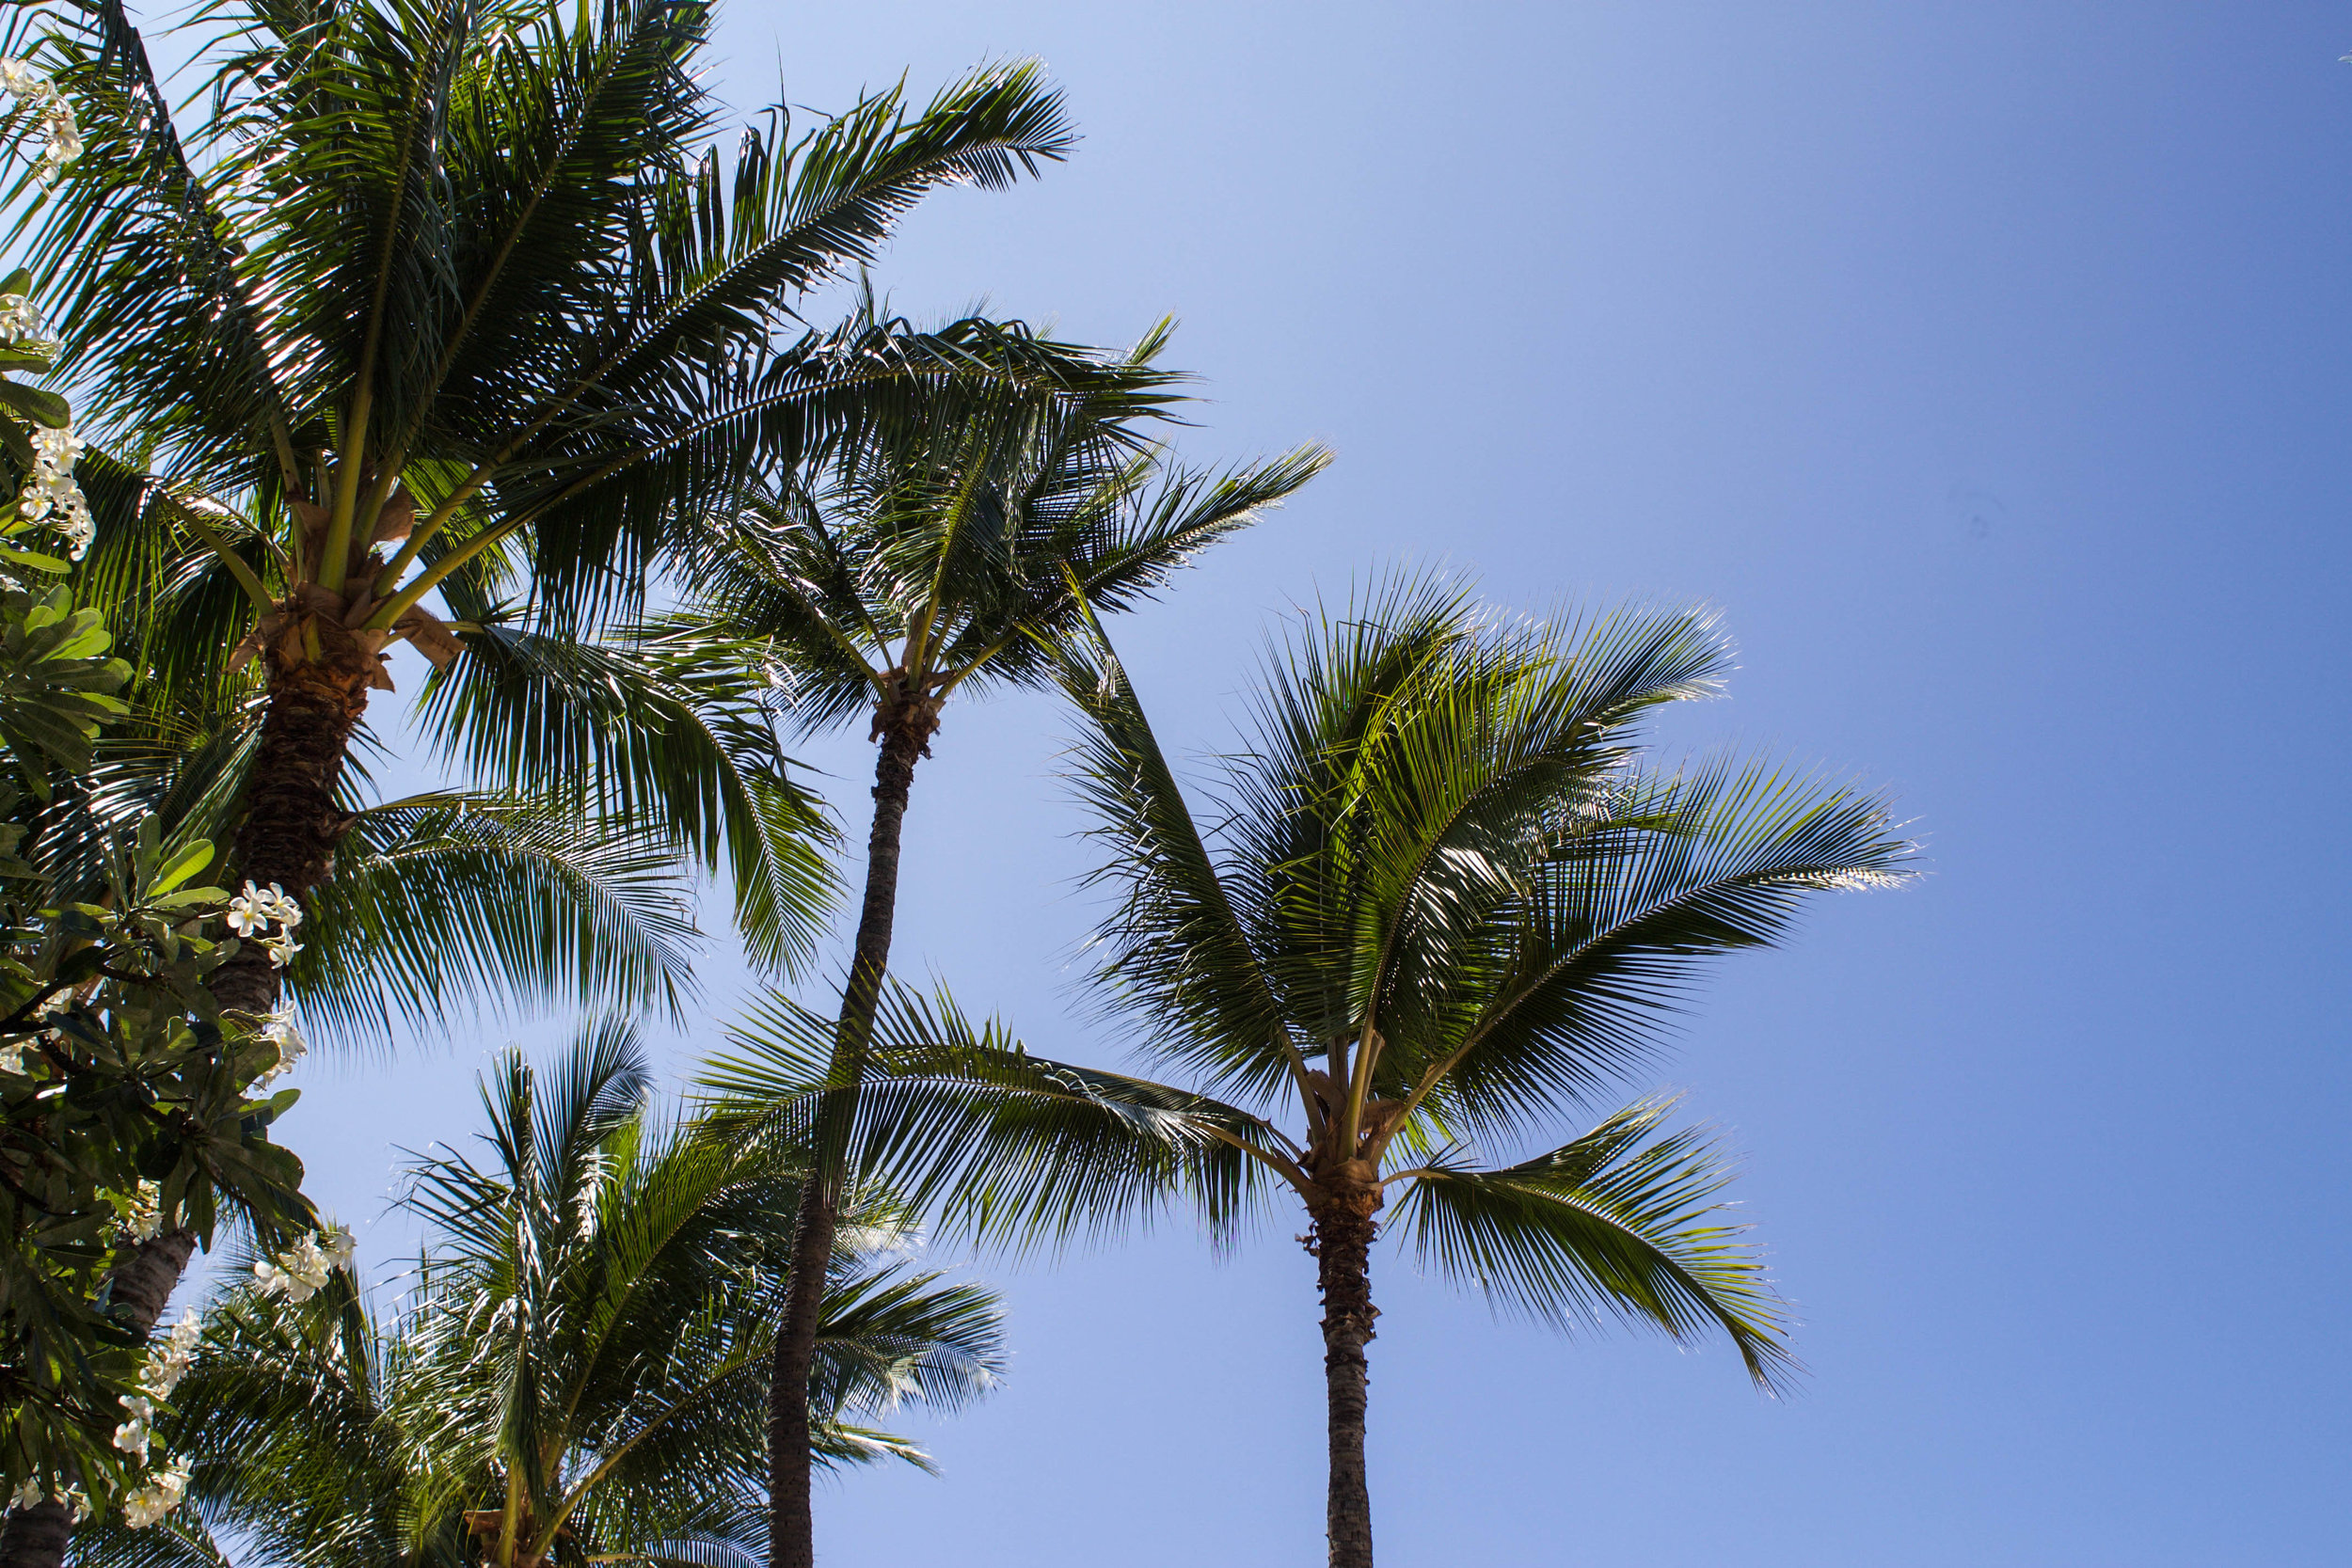 hawaii-palm-trees.jpg